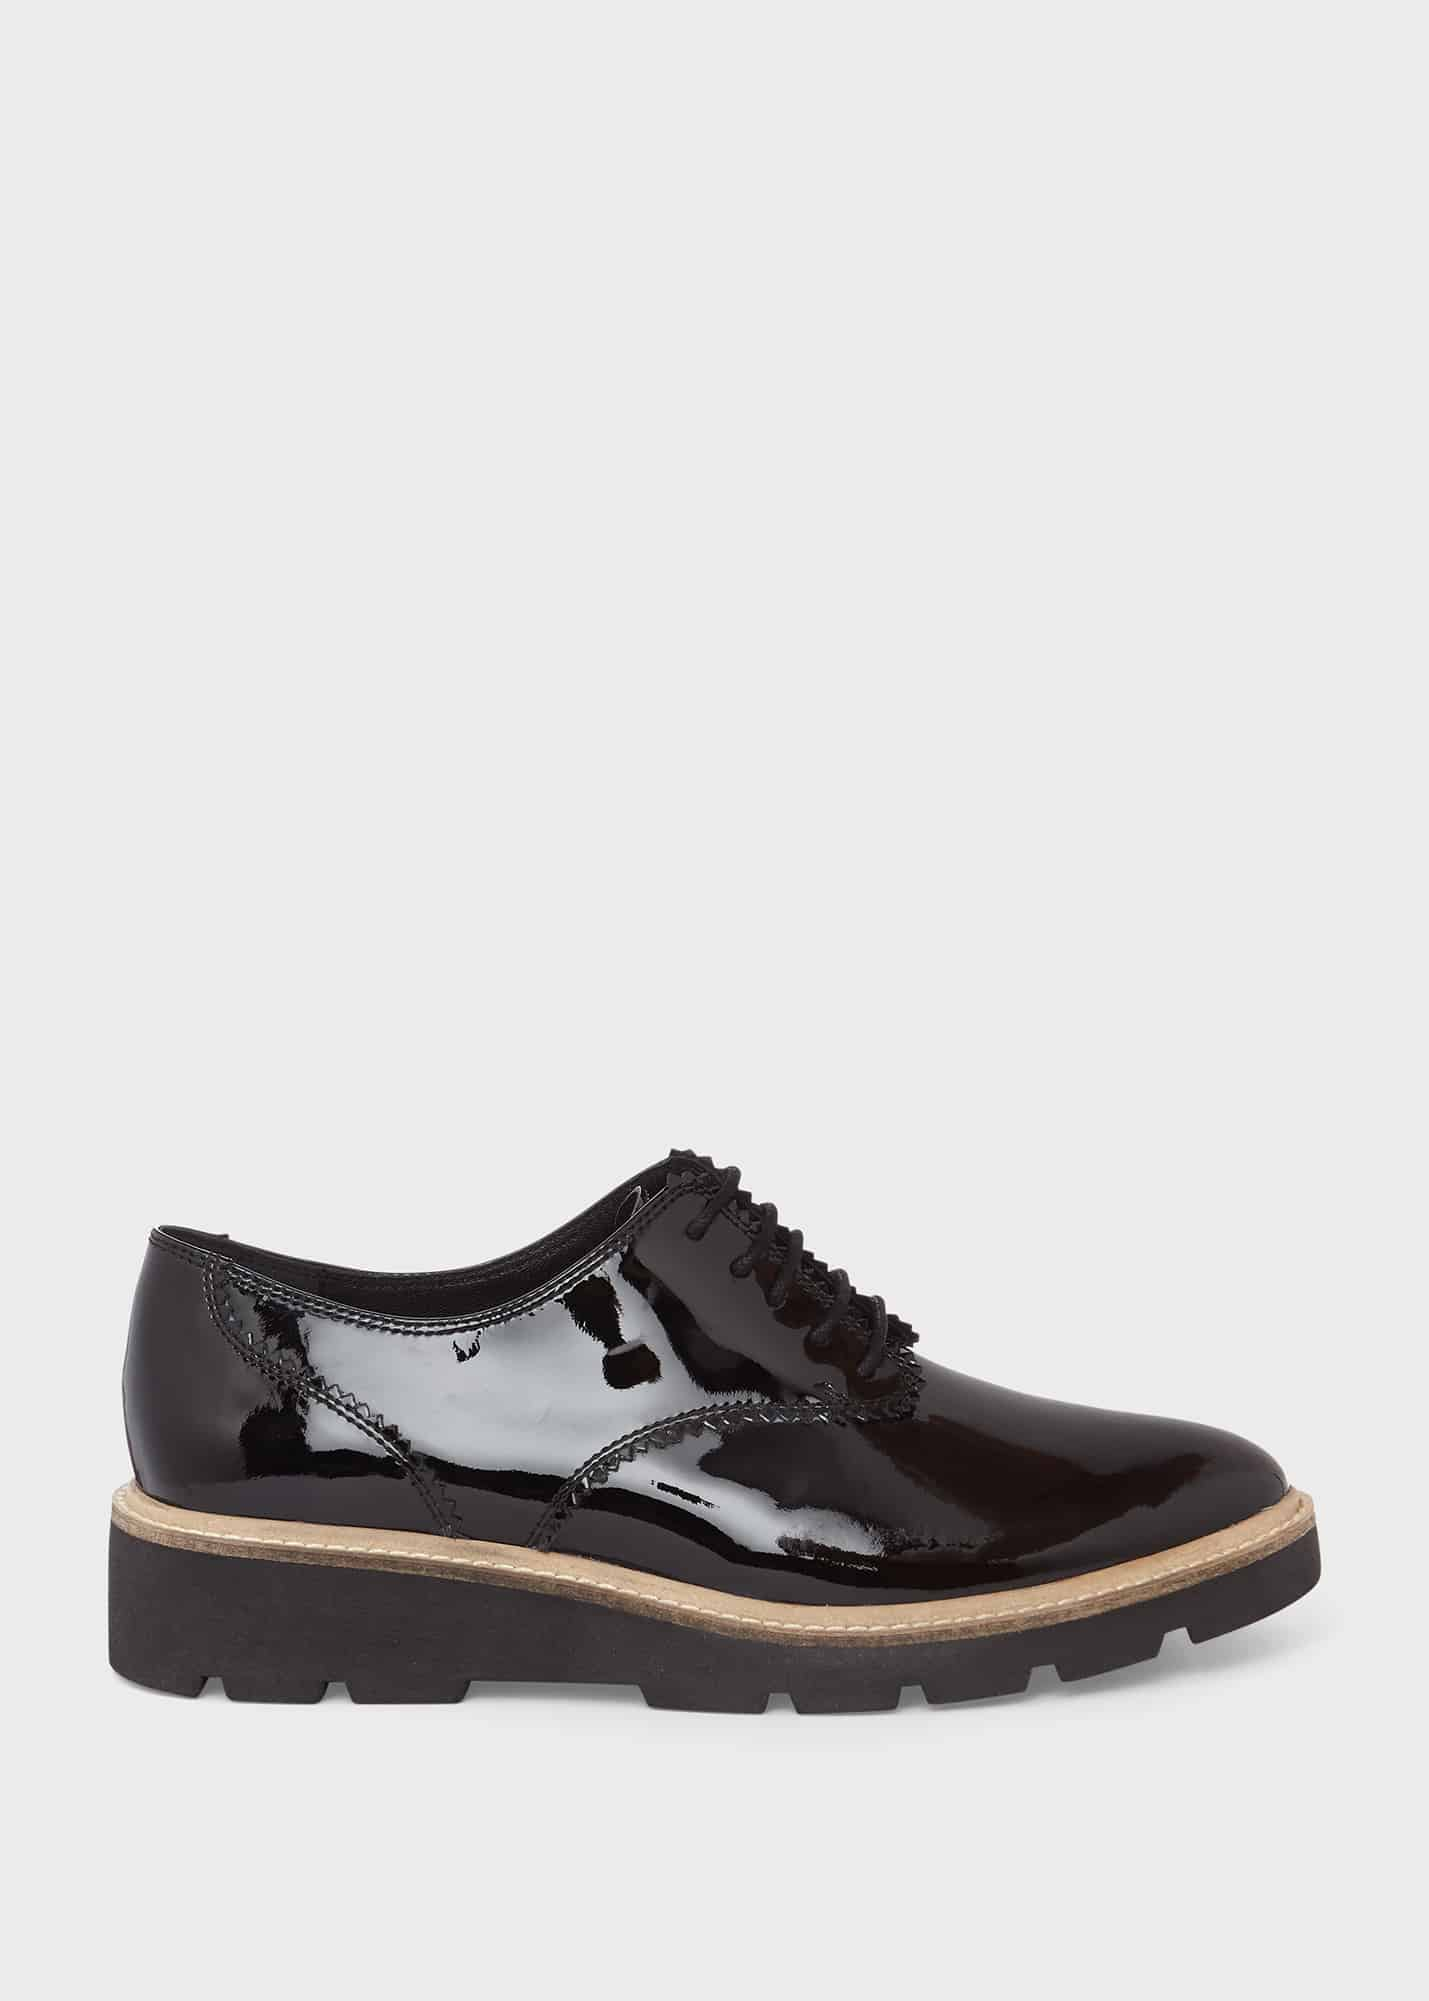 Hobbs Women Chelsey Leather Flat Shoes